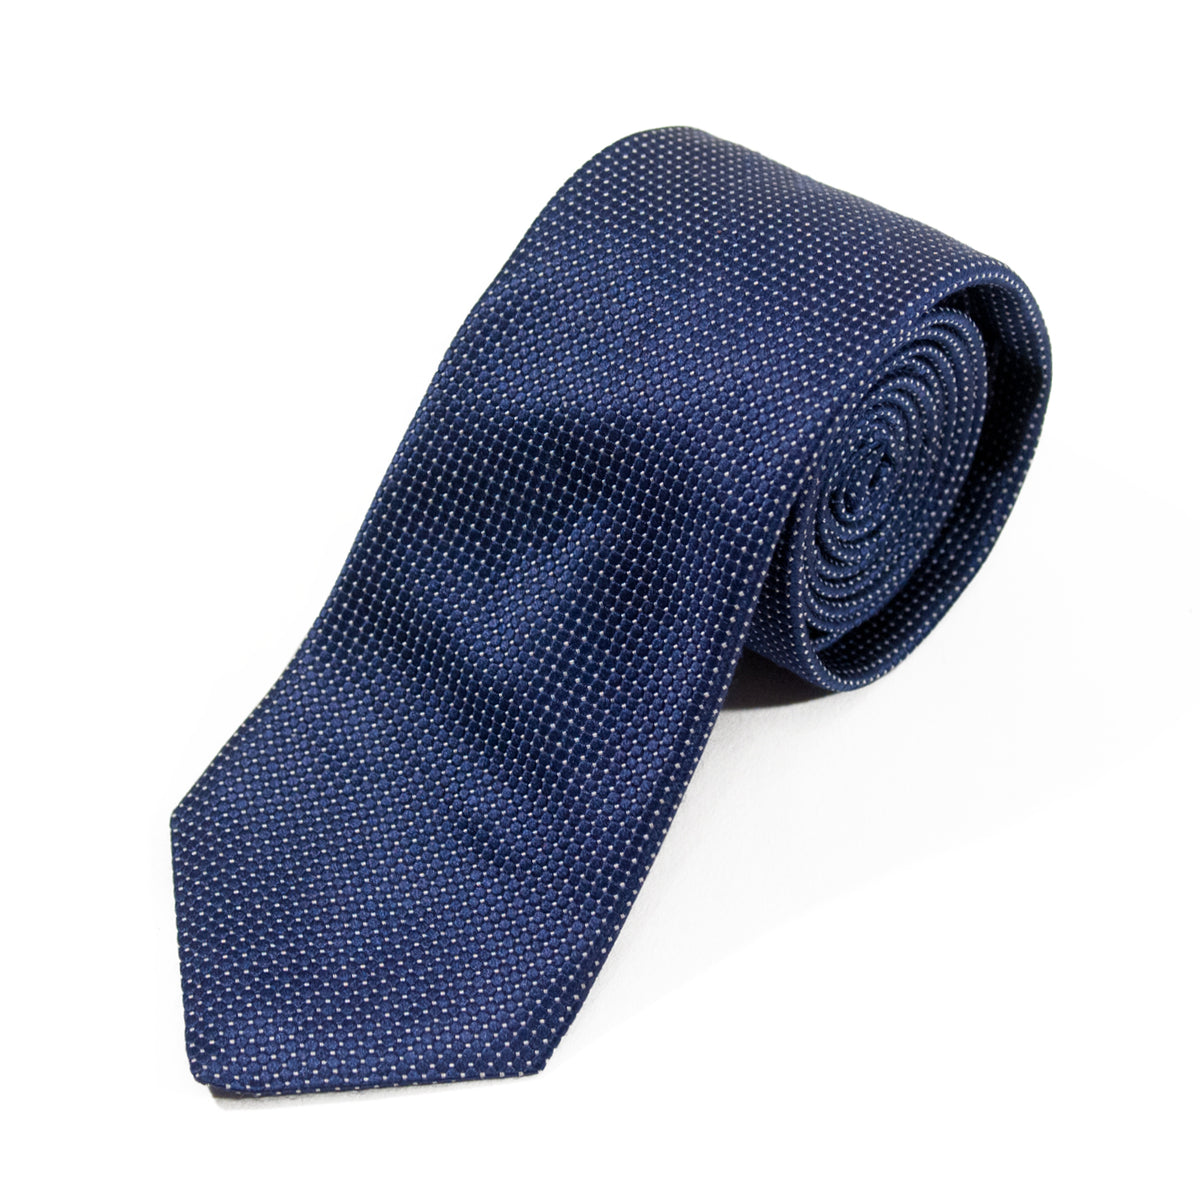 Ted Baker Endurance Dark Grey Micro Check Tie